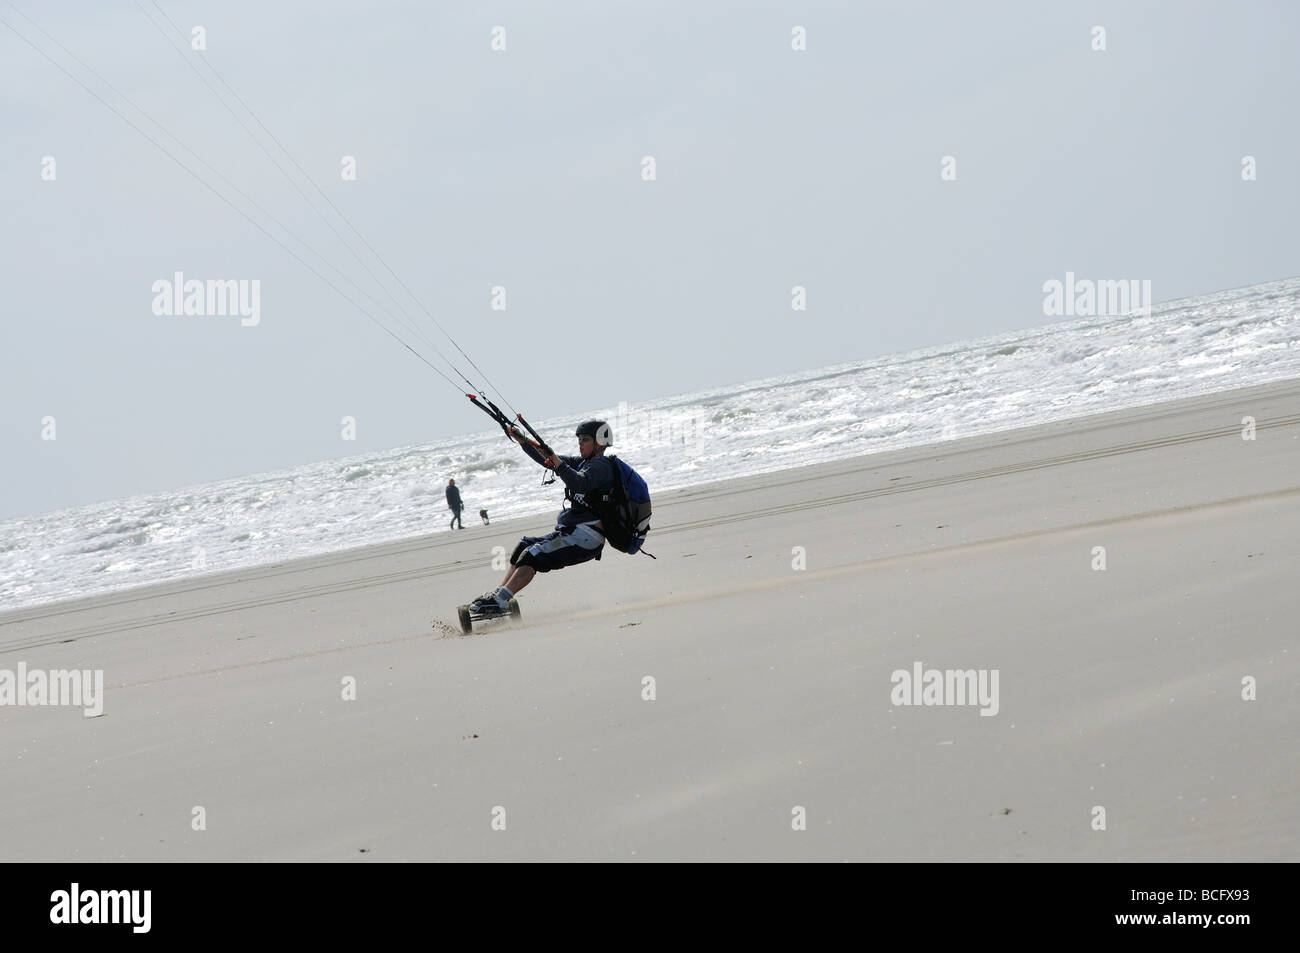 Kite Boarder Wind Energy Motion Stock Photos & Kite Boarder